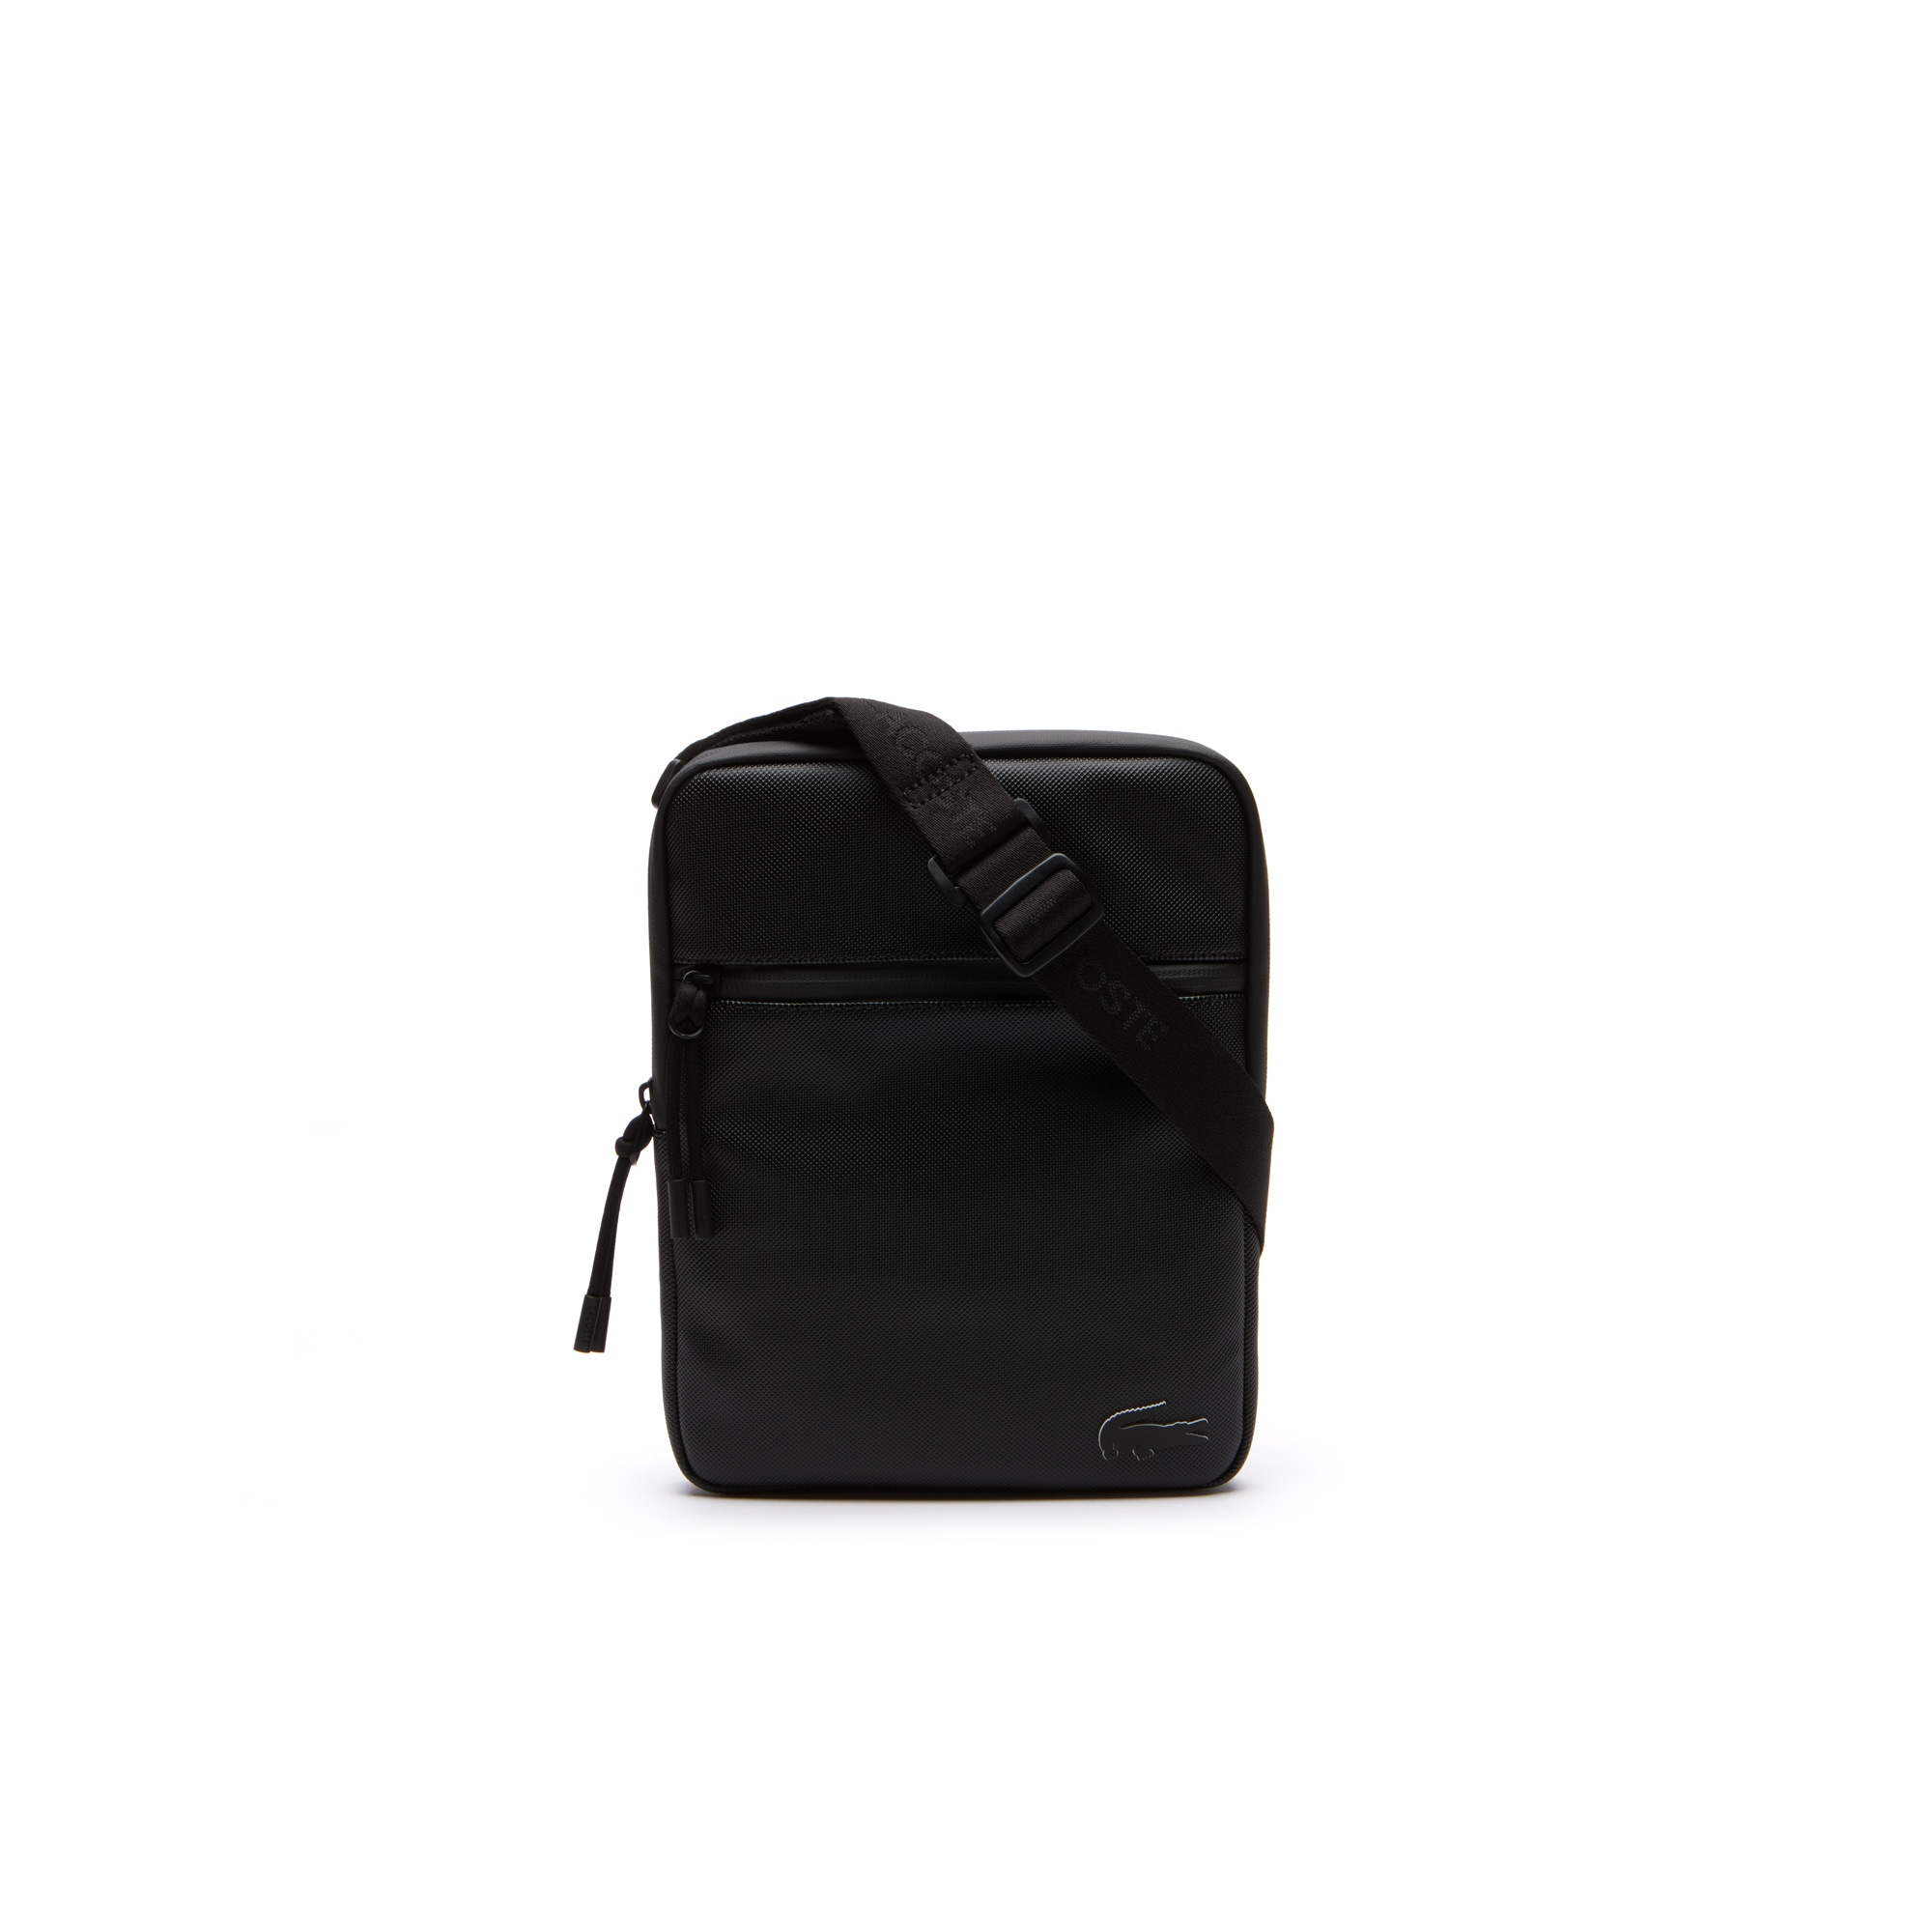 Men's L.12.12 Concept Monochrome Petit Piqué Flat Zip Bag